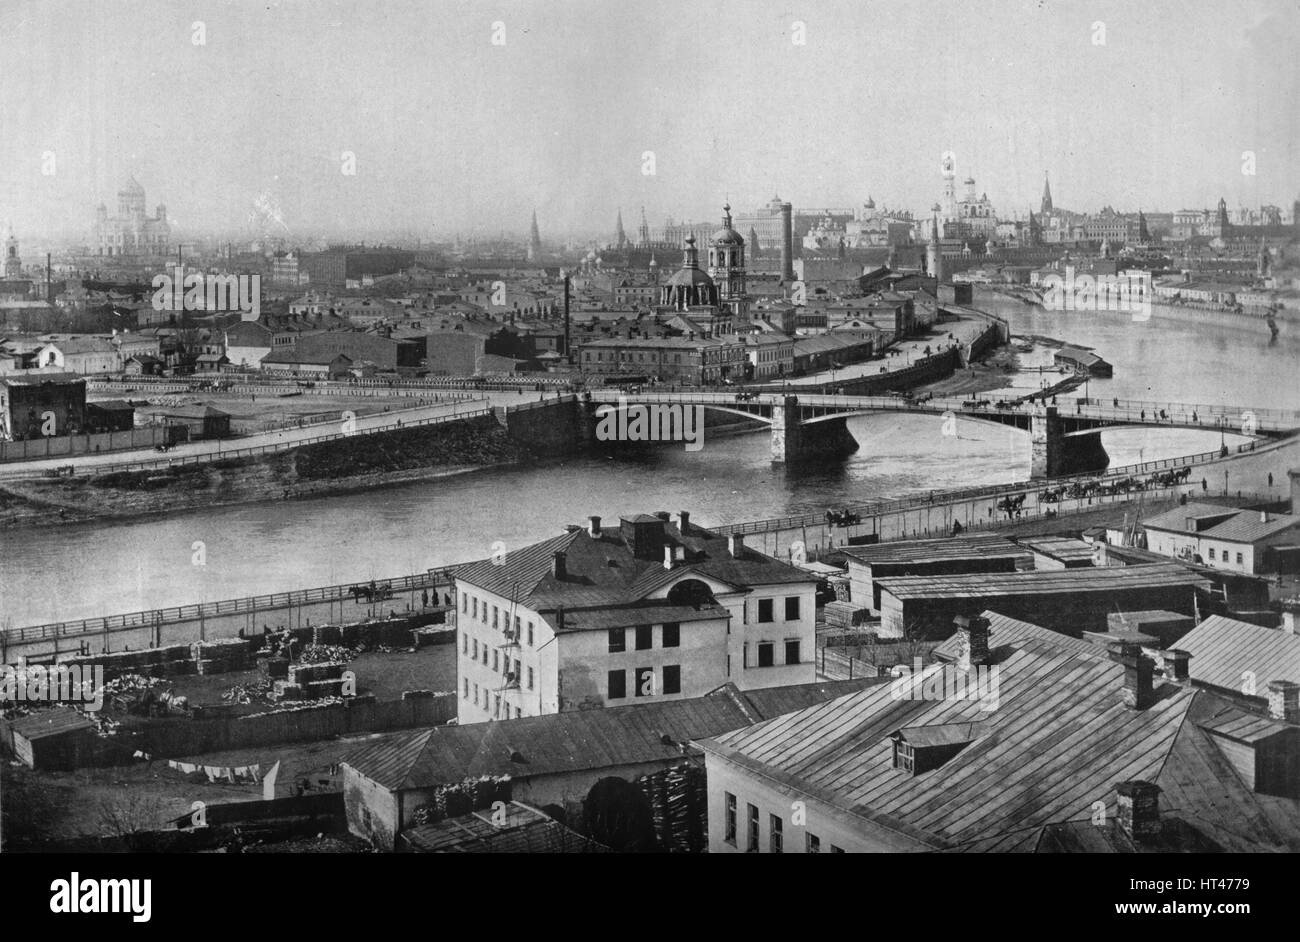 'A general view of Moscow, showing the Kremlin', 1915. Artist: Unknown. Stock Photo